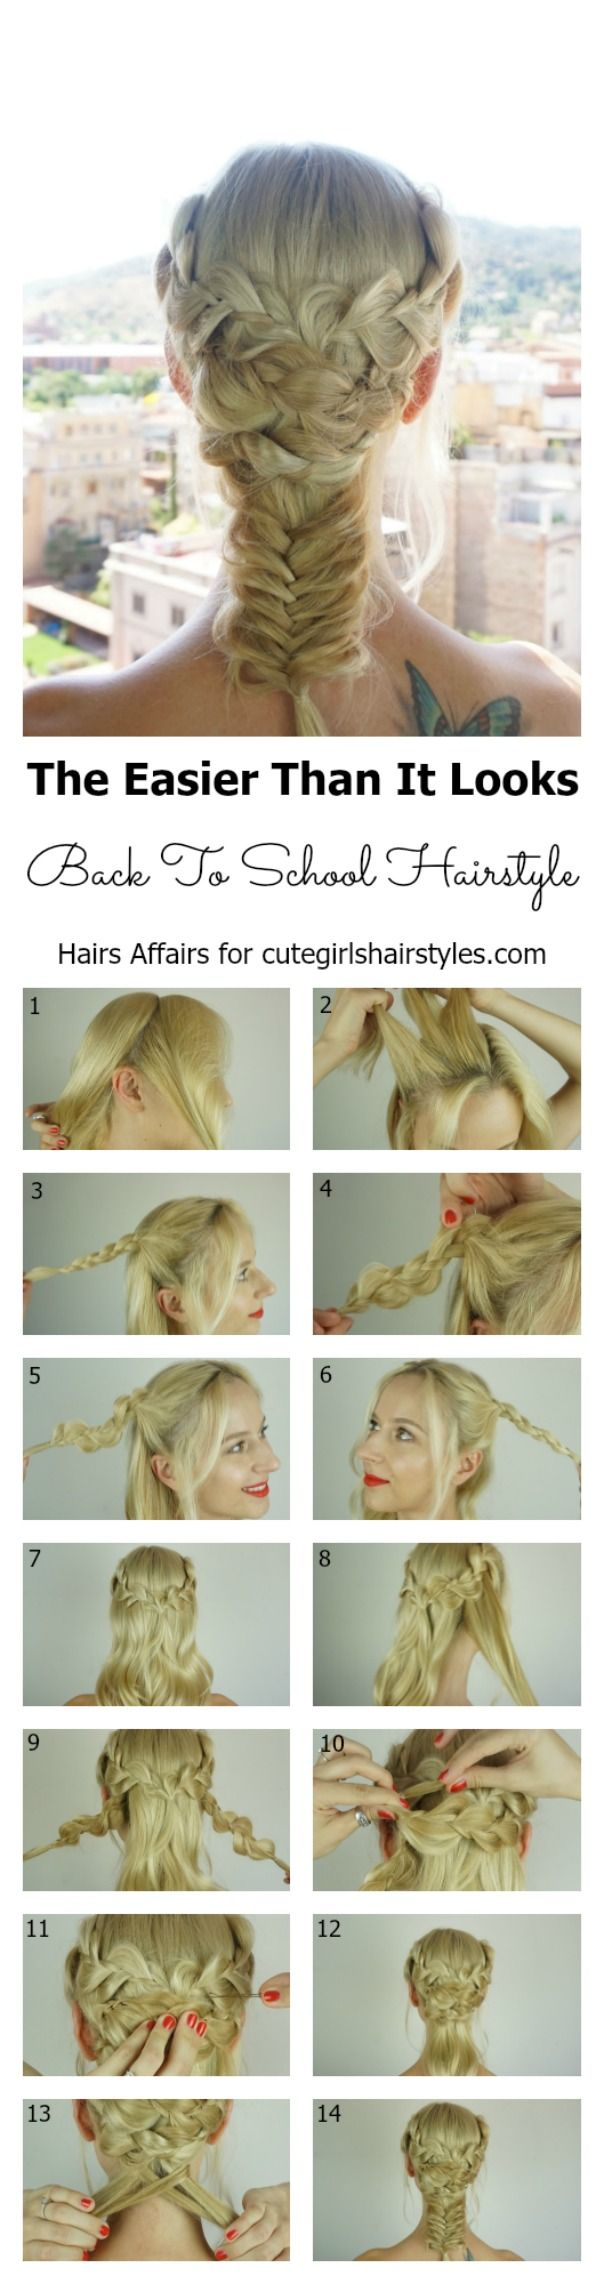 Back to School Hairstyle | CGH Lifestyle